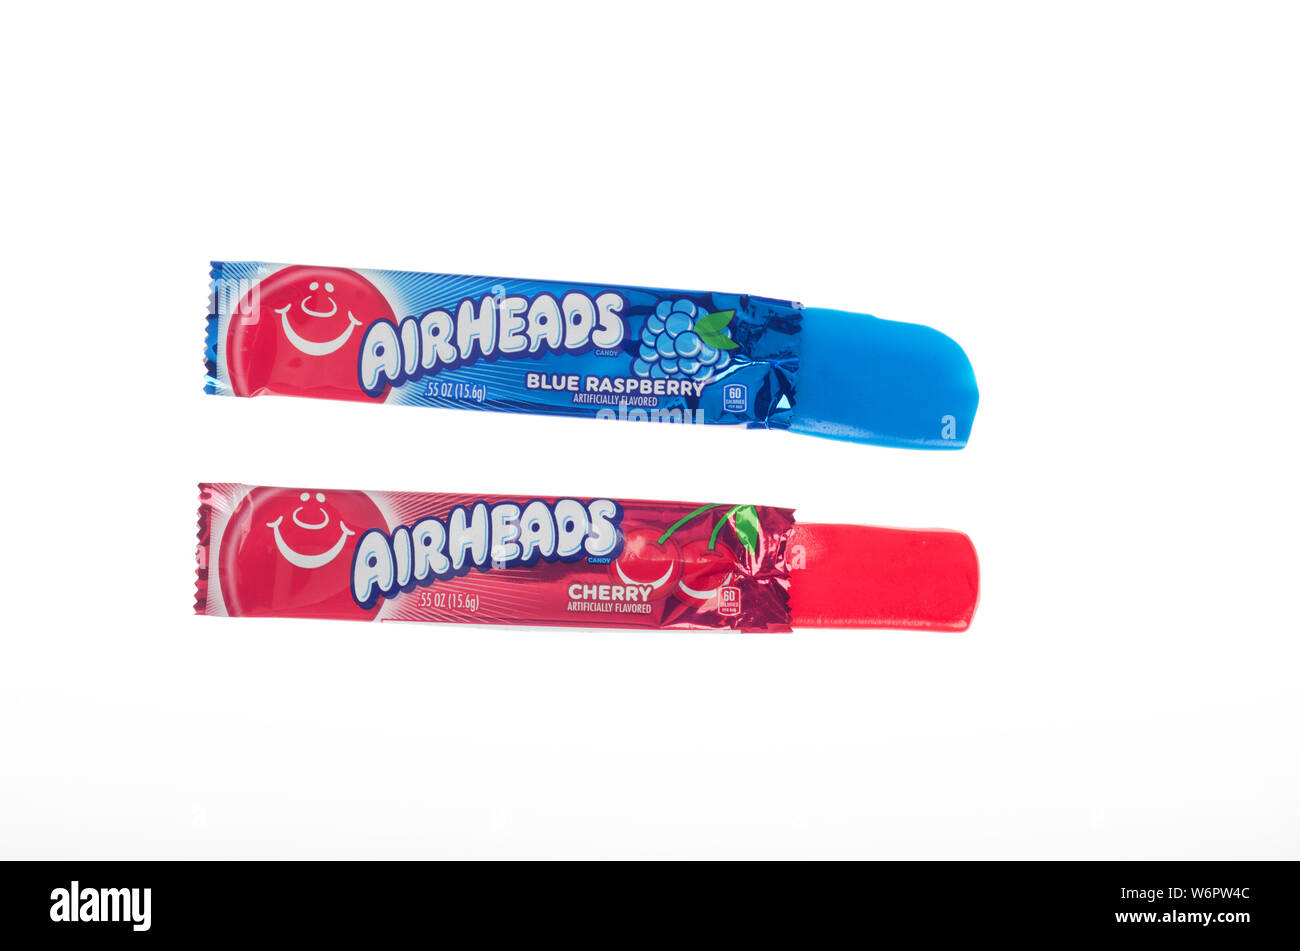 Airheads opened blue raspberry and cherry flavored taffy